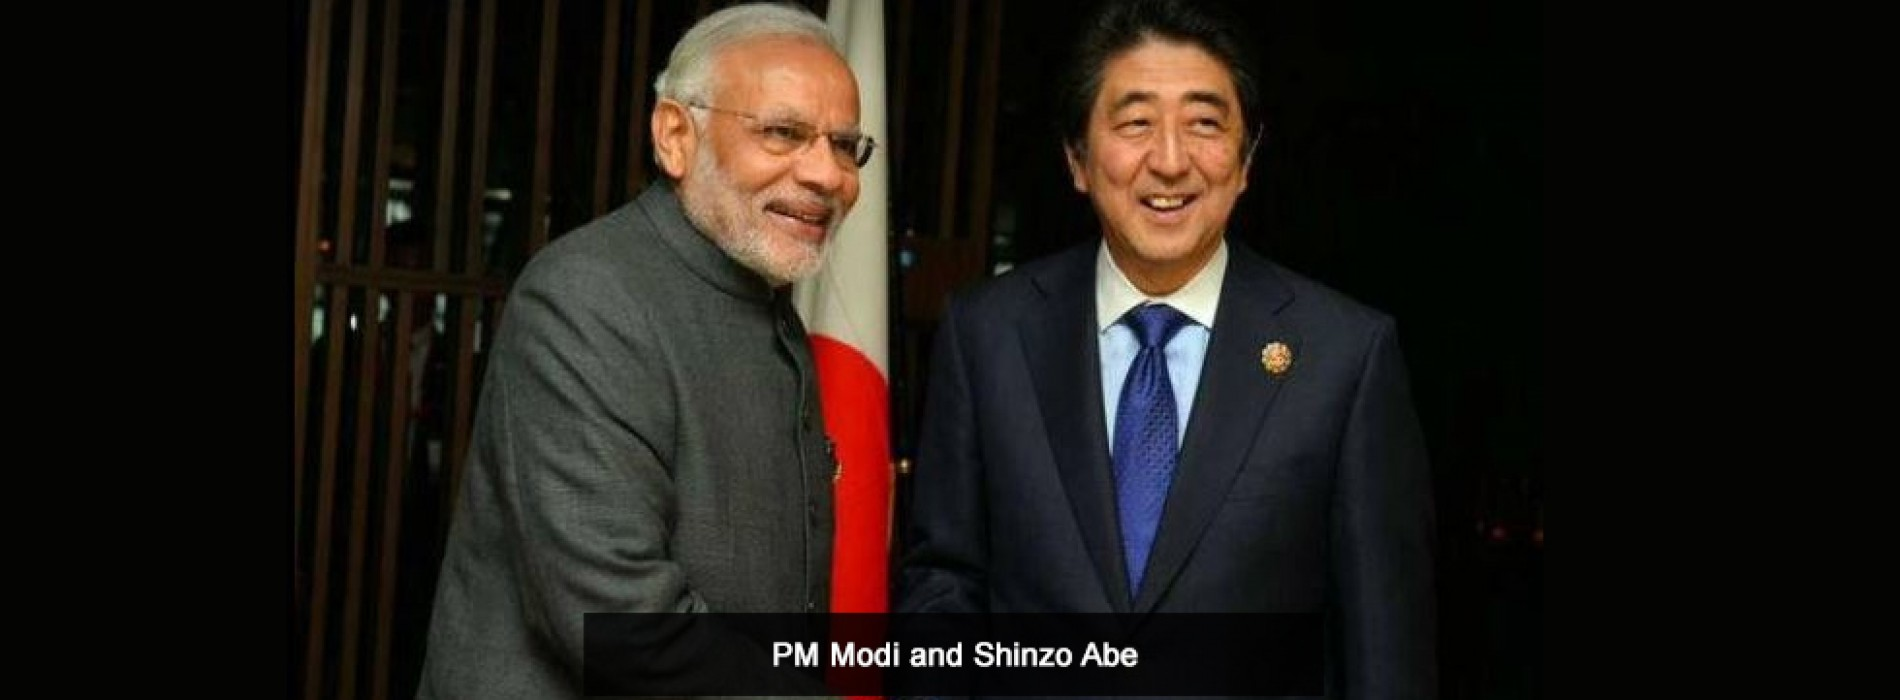 PM Modi and Shinzo Abe to lay foundation stone of bullet train on Thursday